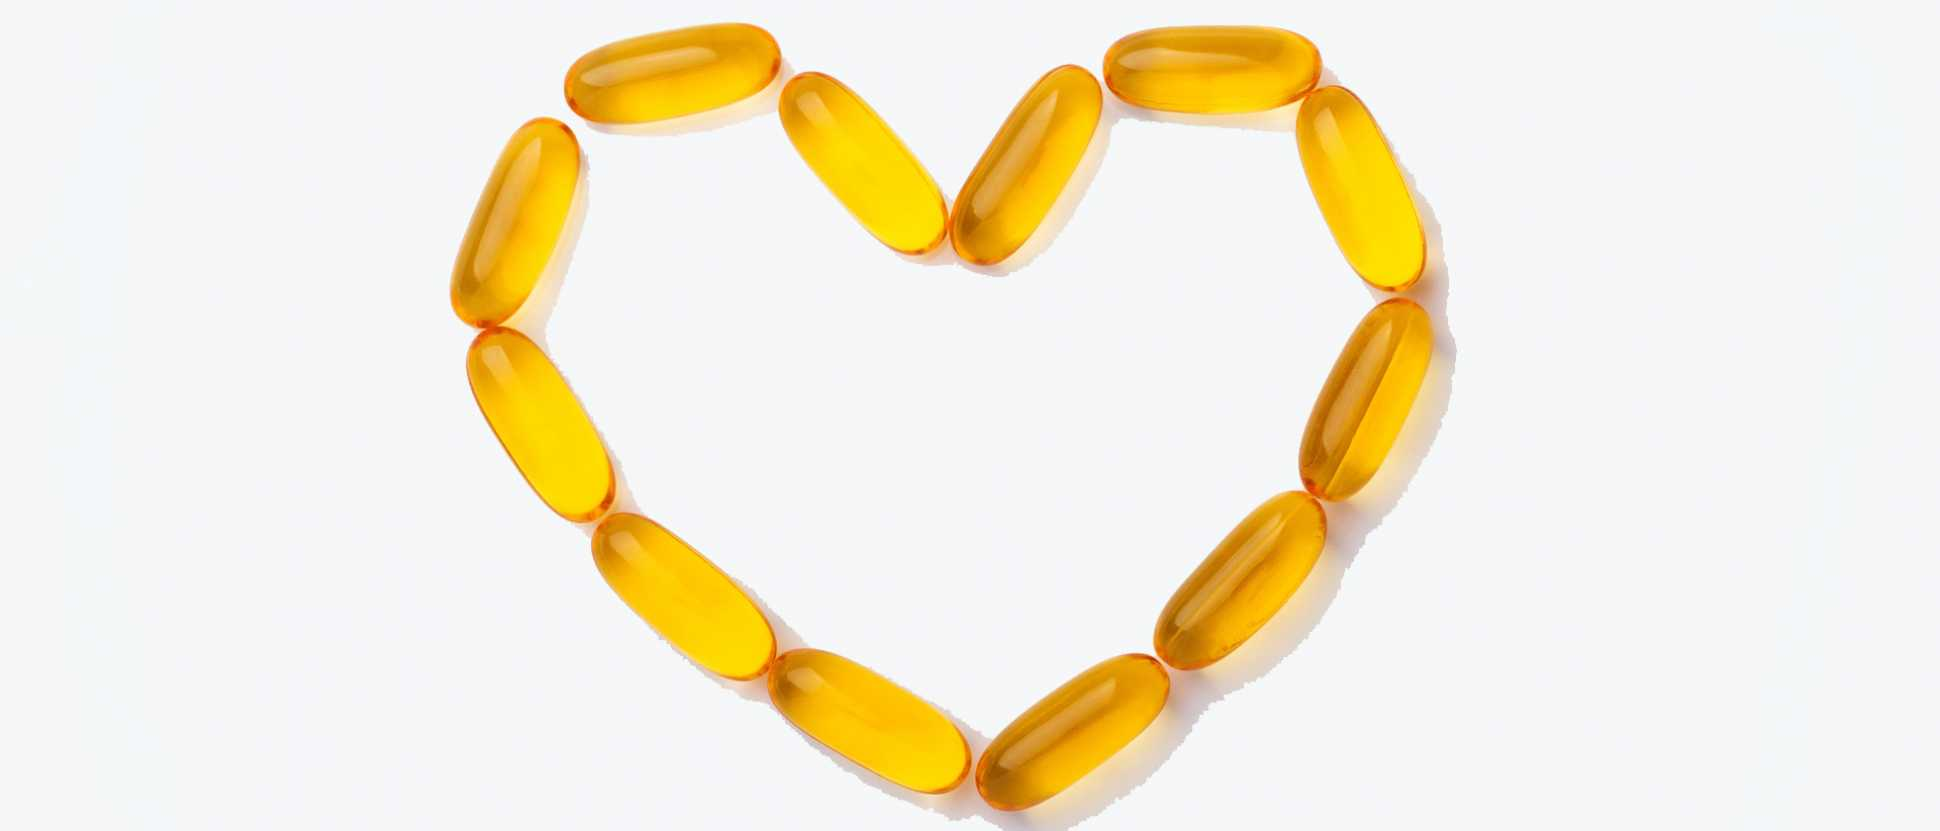 170223-EPA-and-statins-better-than-statin-alone-in-acute-coronary-syndrome2jpg